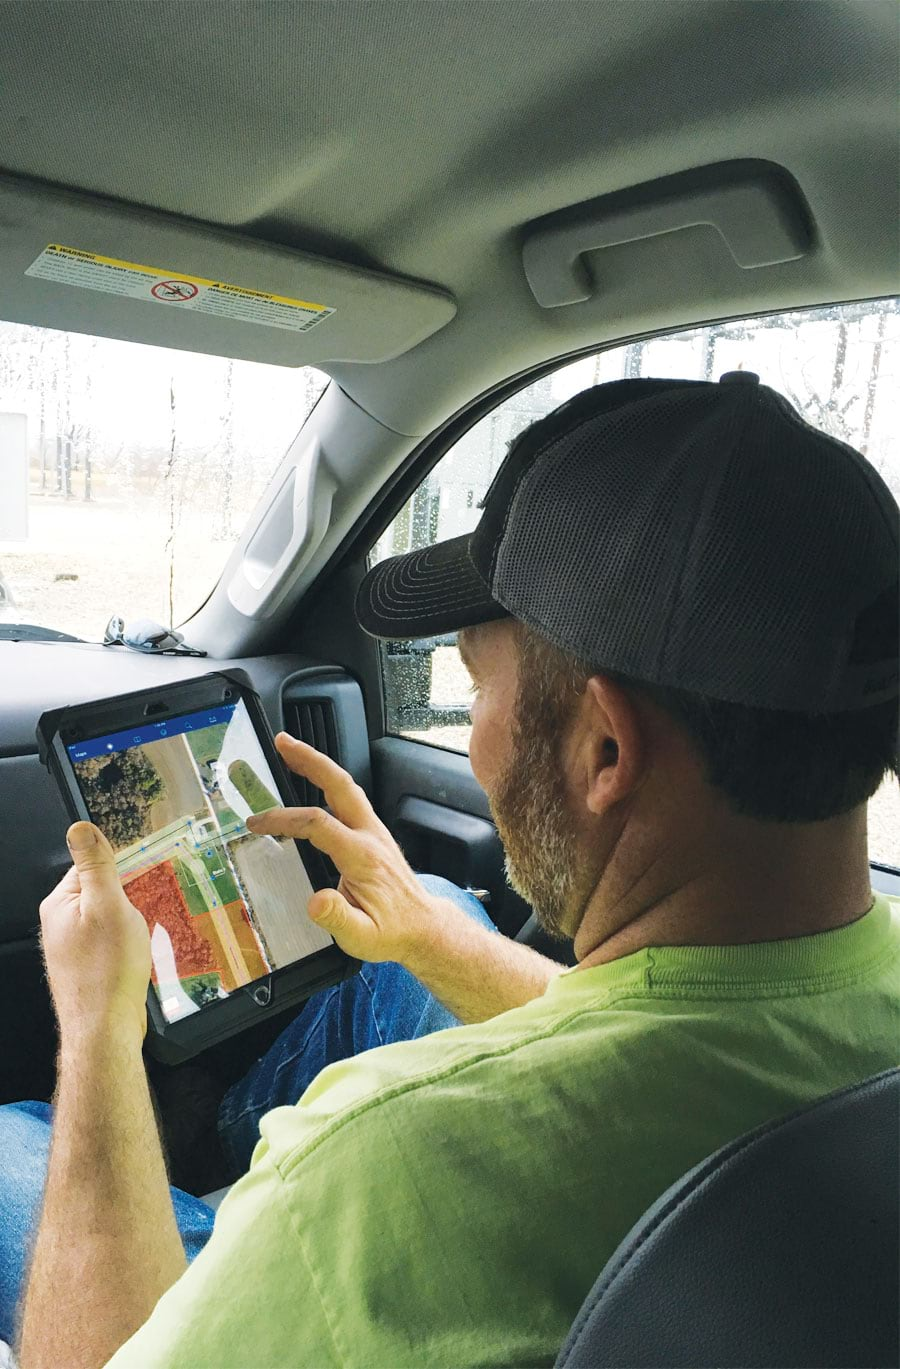 Using Collector for ArcGIS and Survey123 for ArcGIS on iPads